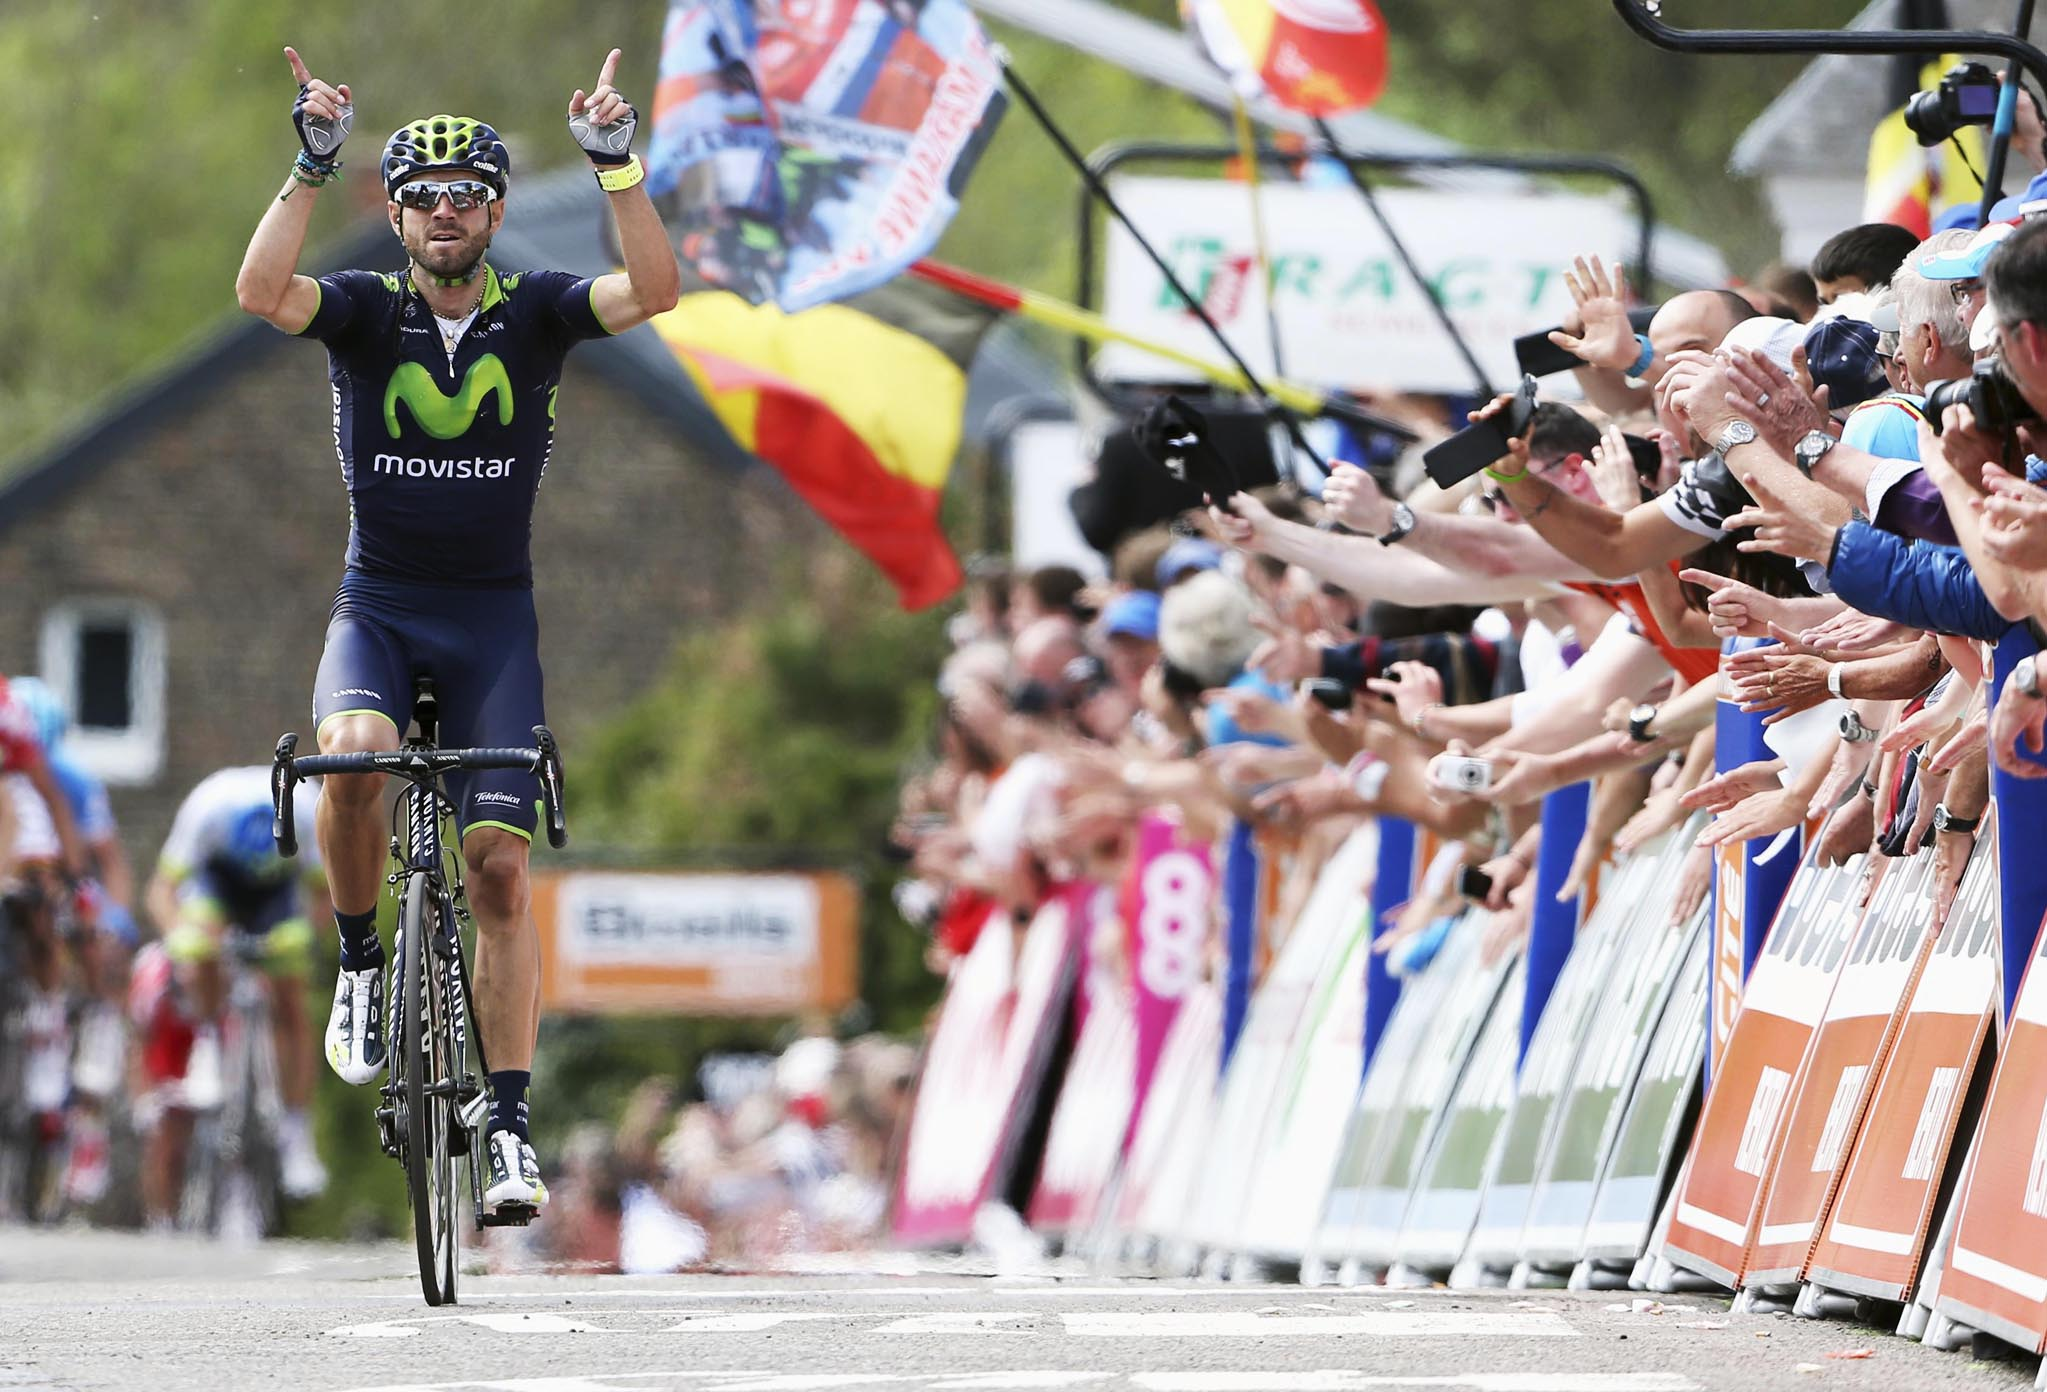 Movistar team rider Valverde of Spain wins the Fleche Wallonne Classic cycling race in Huy